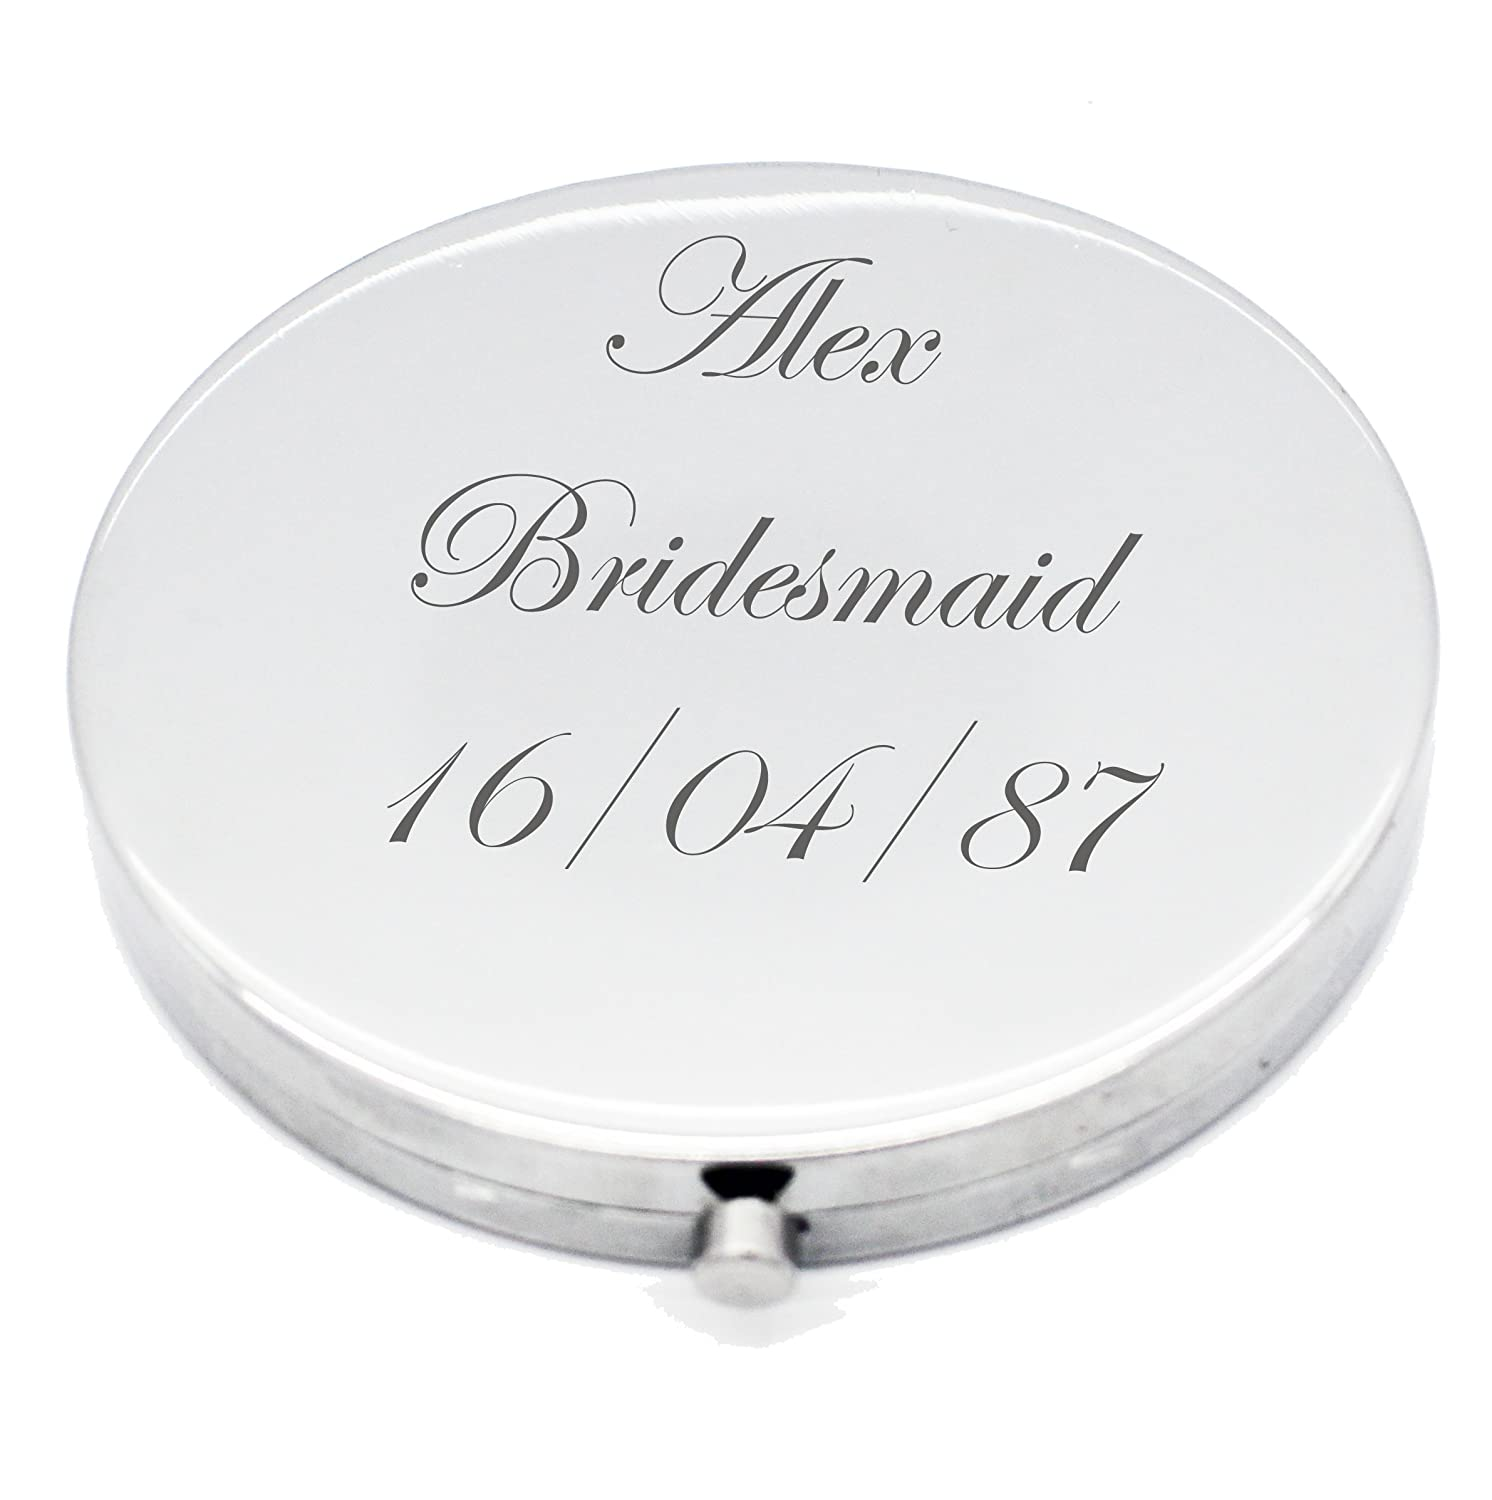 Personalised Silver Round Circle Shape Compact Mirror For Bridesmaid, Wedding Favour Any Name & Message Engraved Vincenza